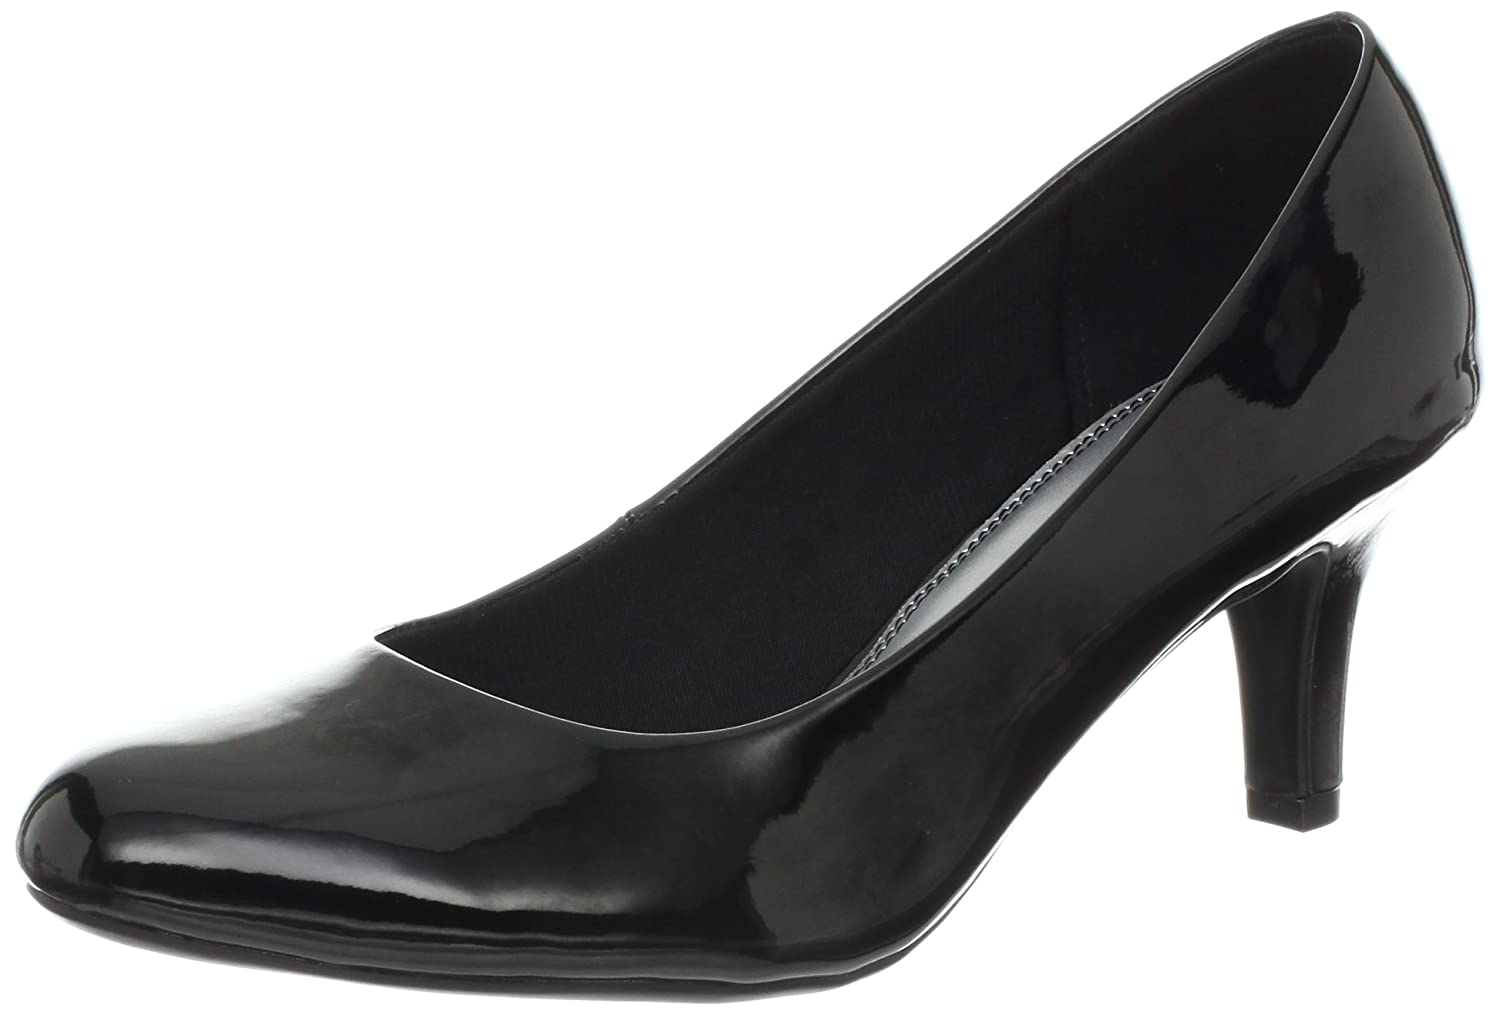 Pumps & Heels Women's Shoes | Amazon.com